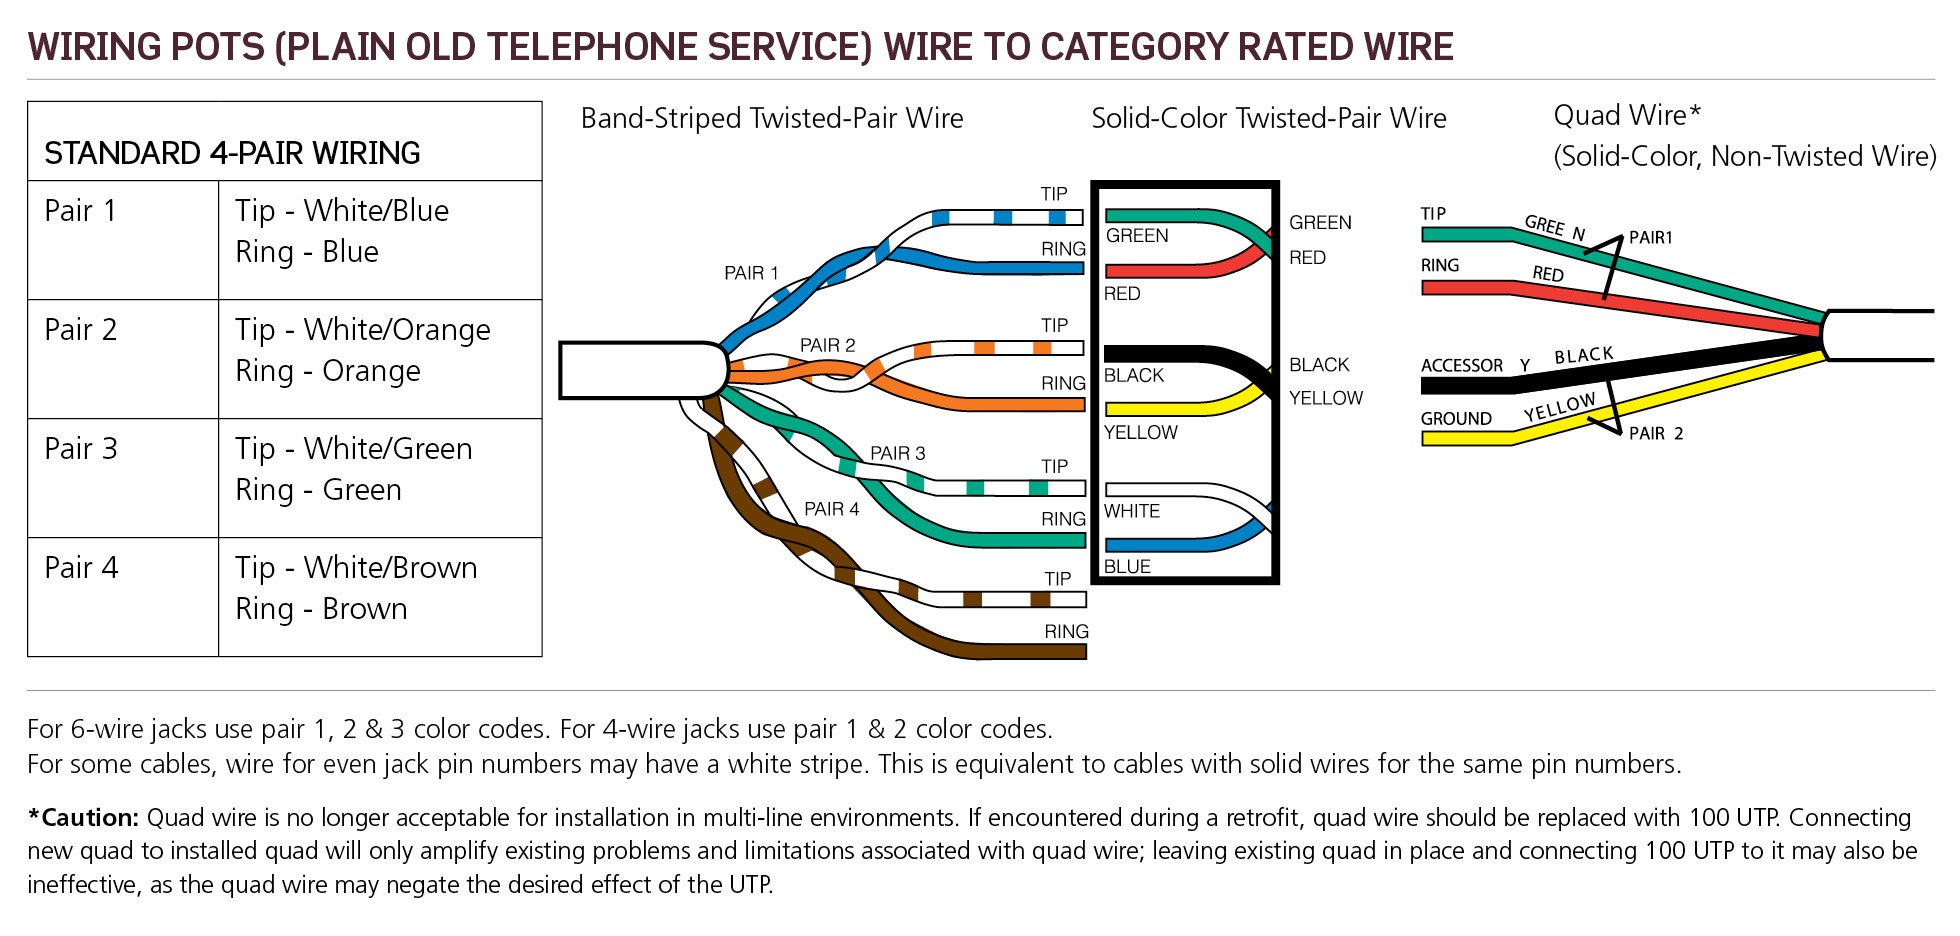 hight resolution of telephone pole wiring cat 6 cable wiring twisted pair telephone wire cat 6 wiring diagram wall jack cat 6 phone wiring diagram